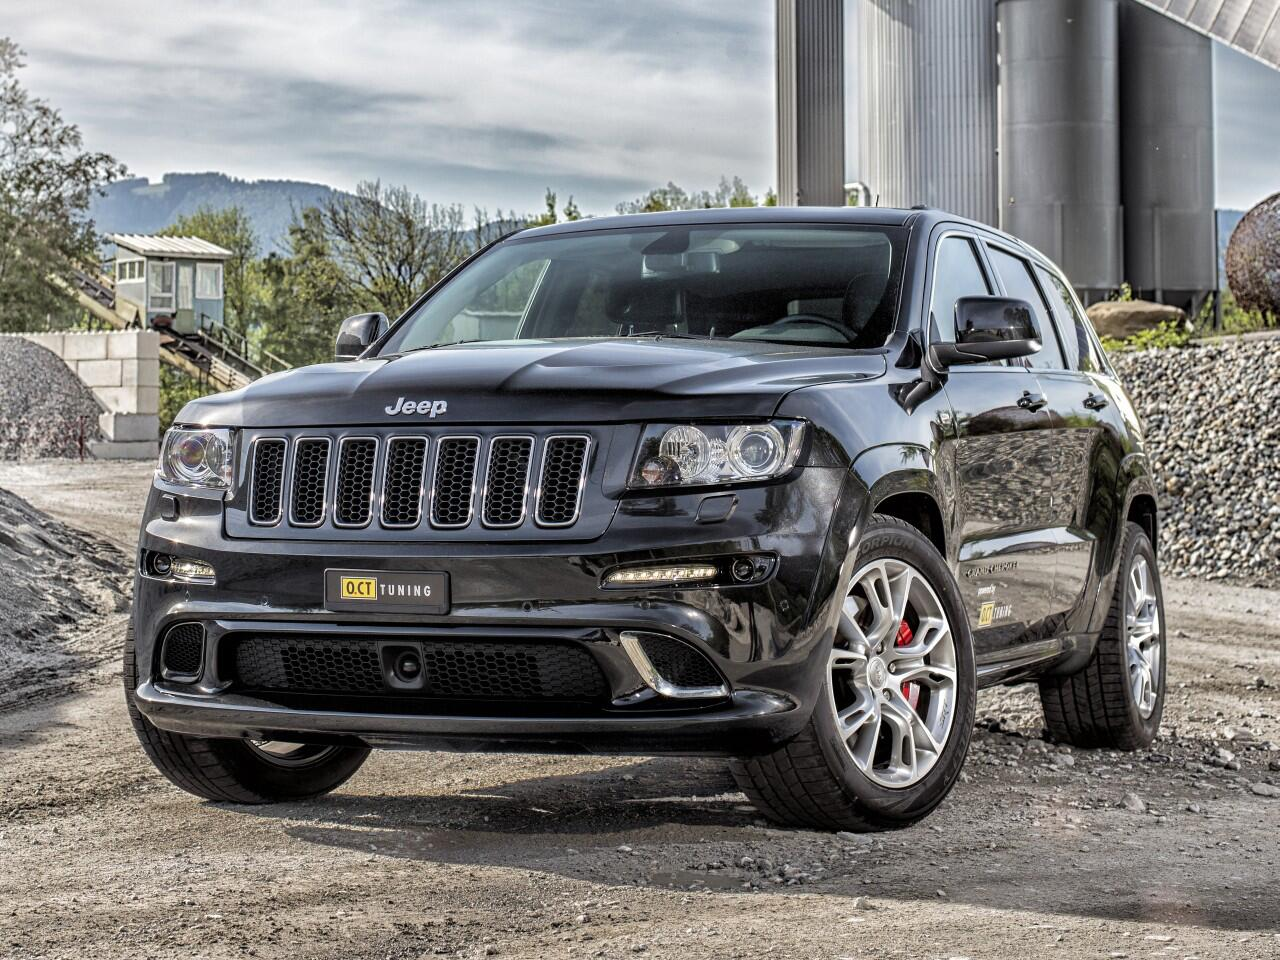 Bild zu Jeep Grand Cherokee SRT8